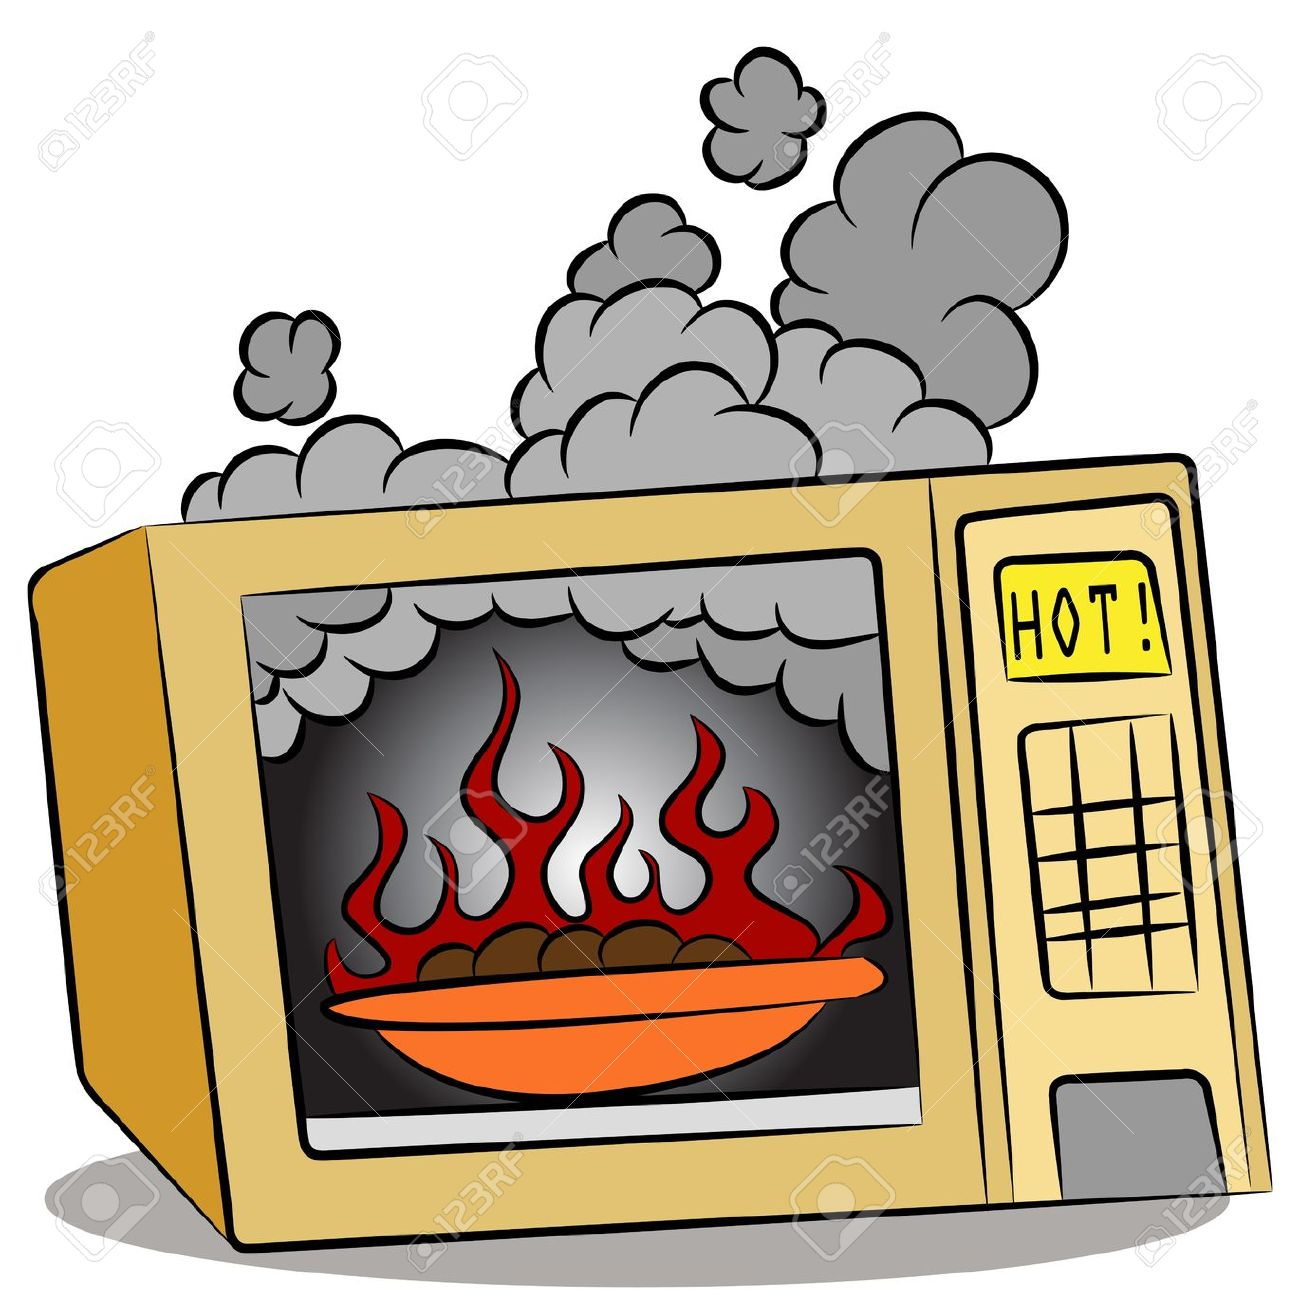 An Image Of Food Burning In A Microwave Oven. Royalty Free.